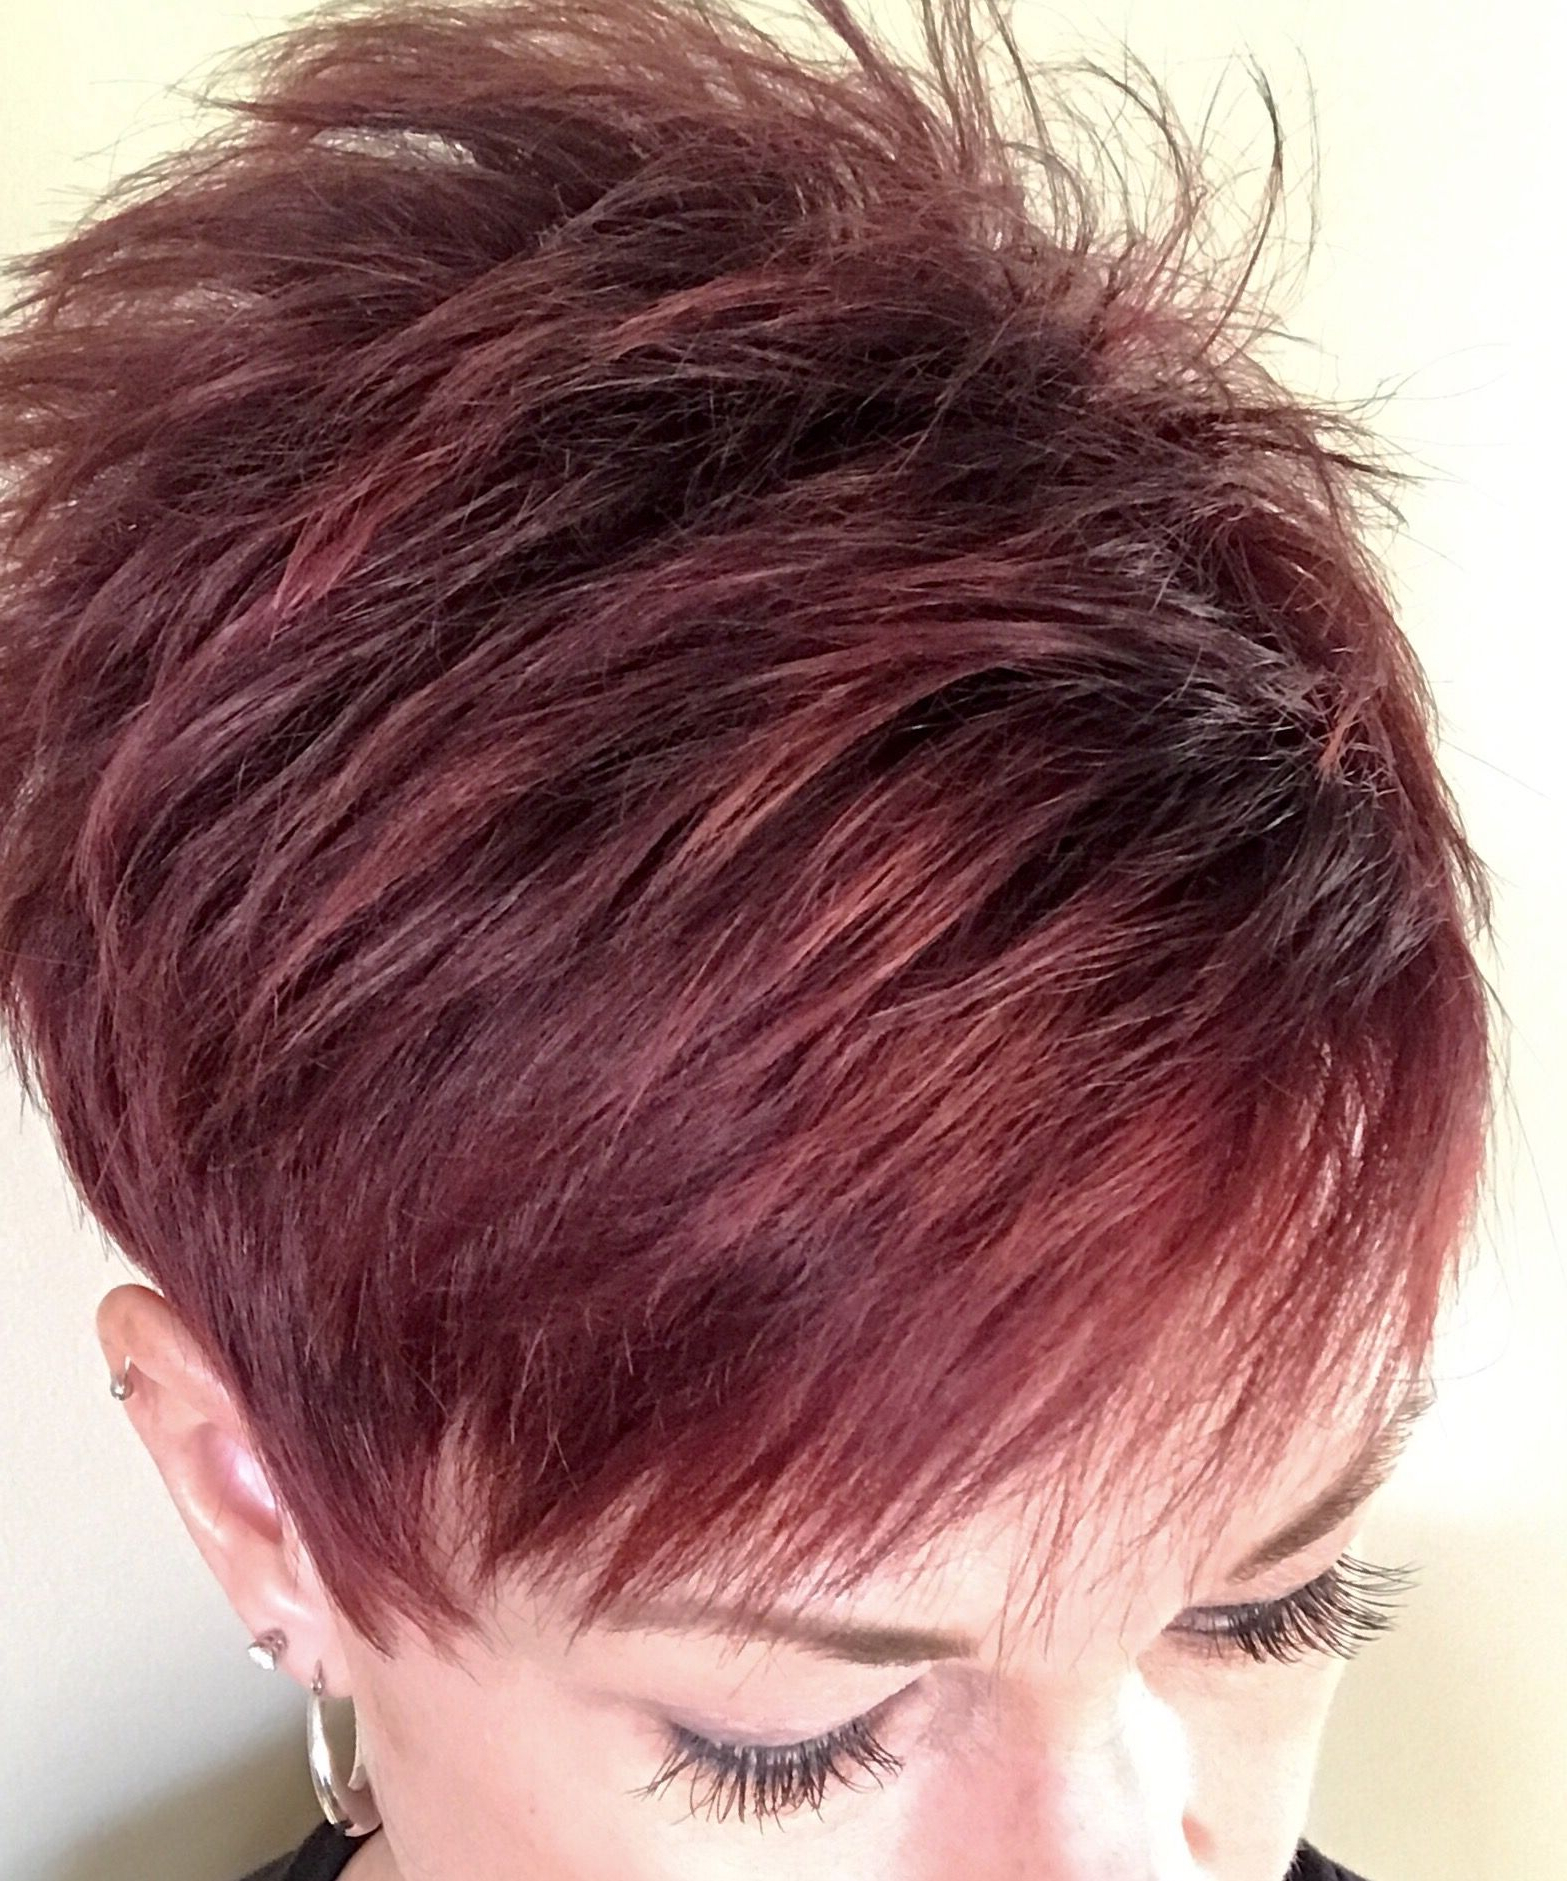 Short Hair Red In 2019 | Short Red Hair, Burgandy Short Hair Within Edgy Red Hairstyles (View 6 of 20)